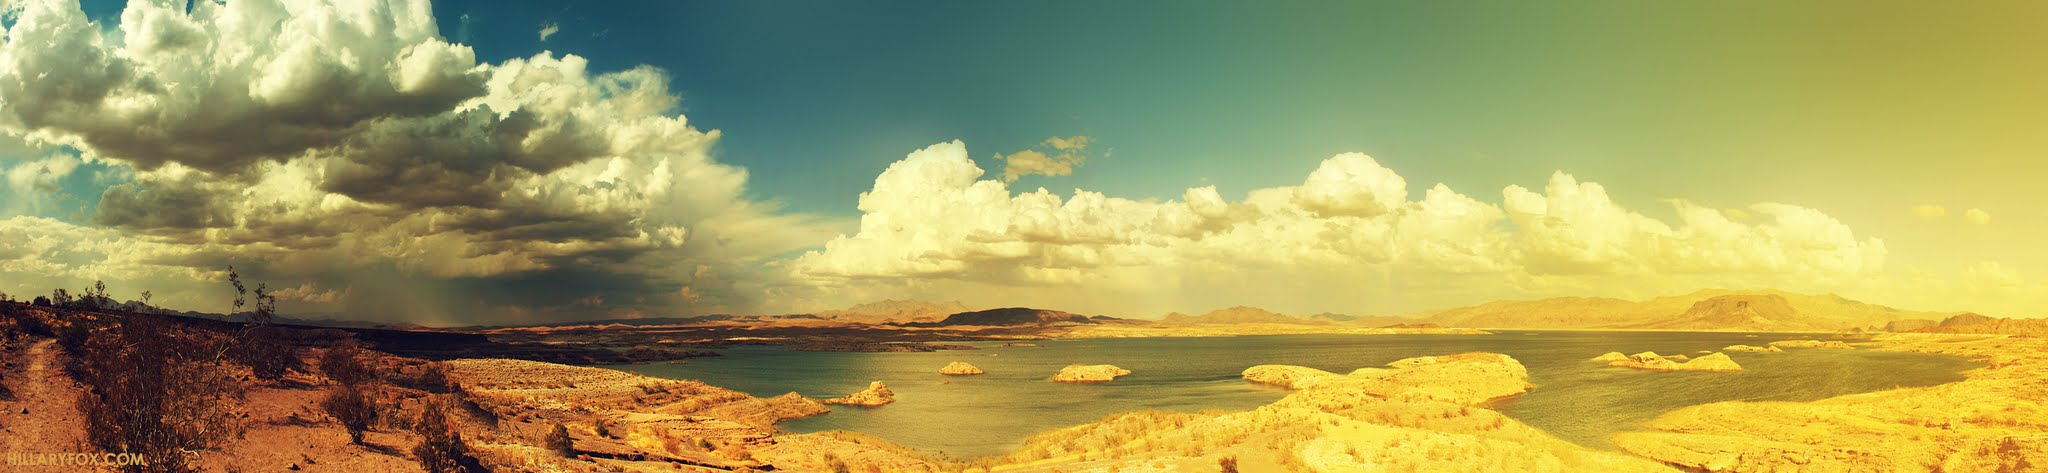 Photo: Lake Mead in 66 Megapixels - Photo by Hillary Fox